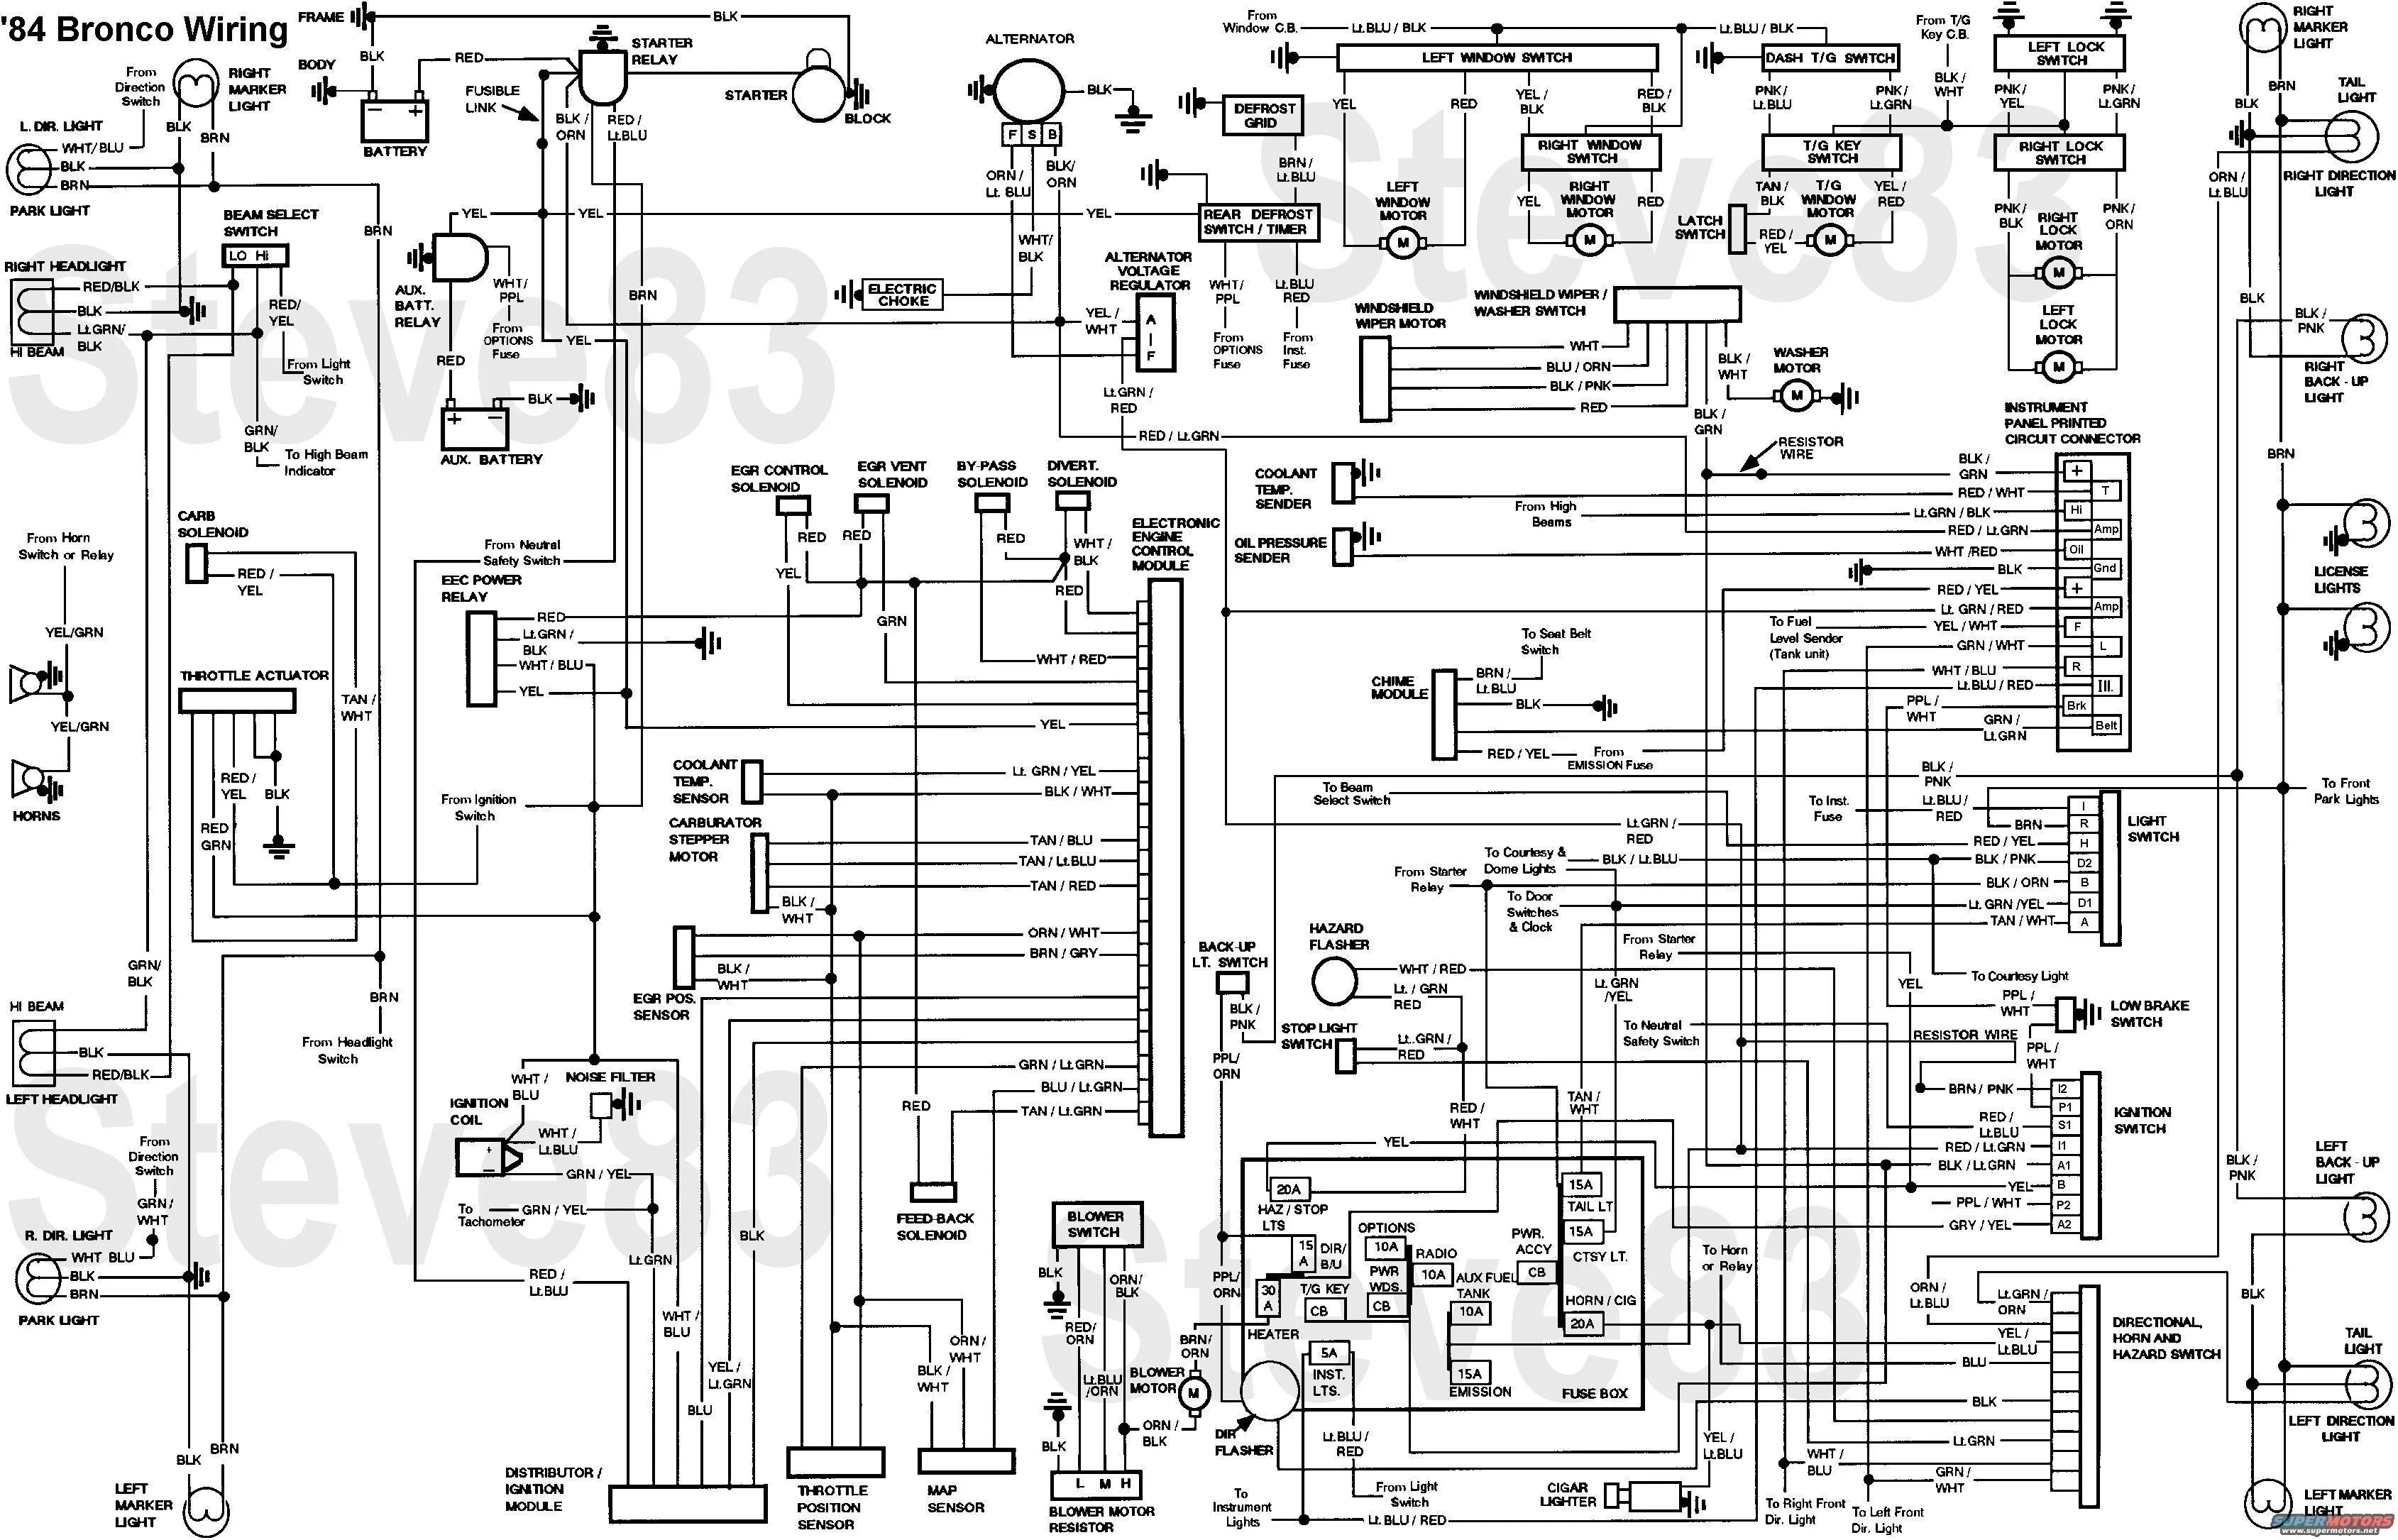 kubota wiring harness diagram wiring diagram database kubota radio wiring harness kubota wiring harness [ 3379 x 2170 Pixel ]